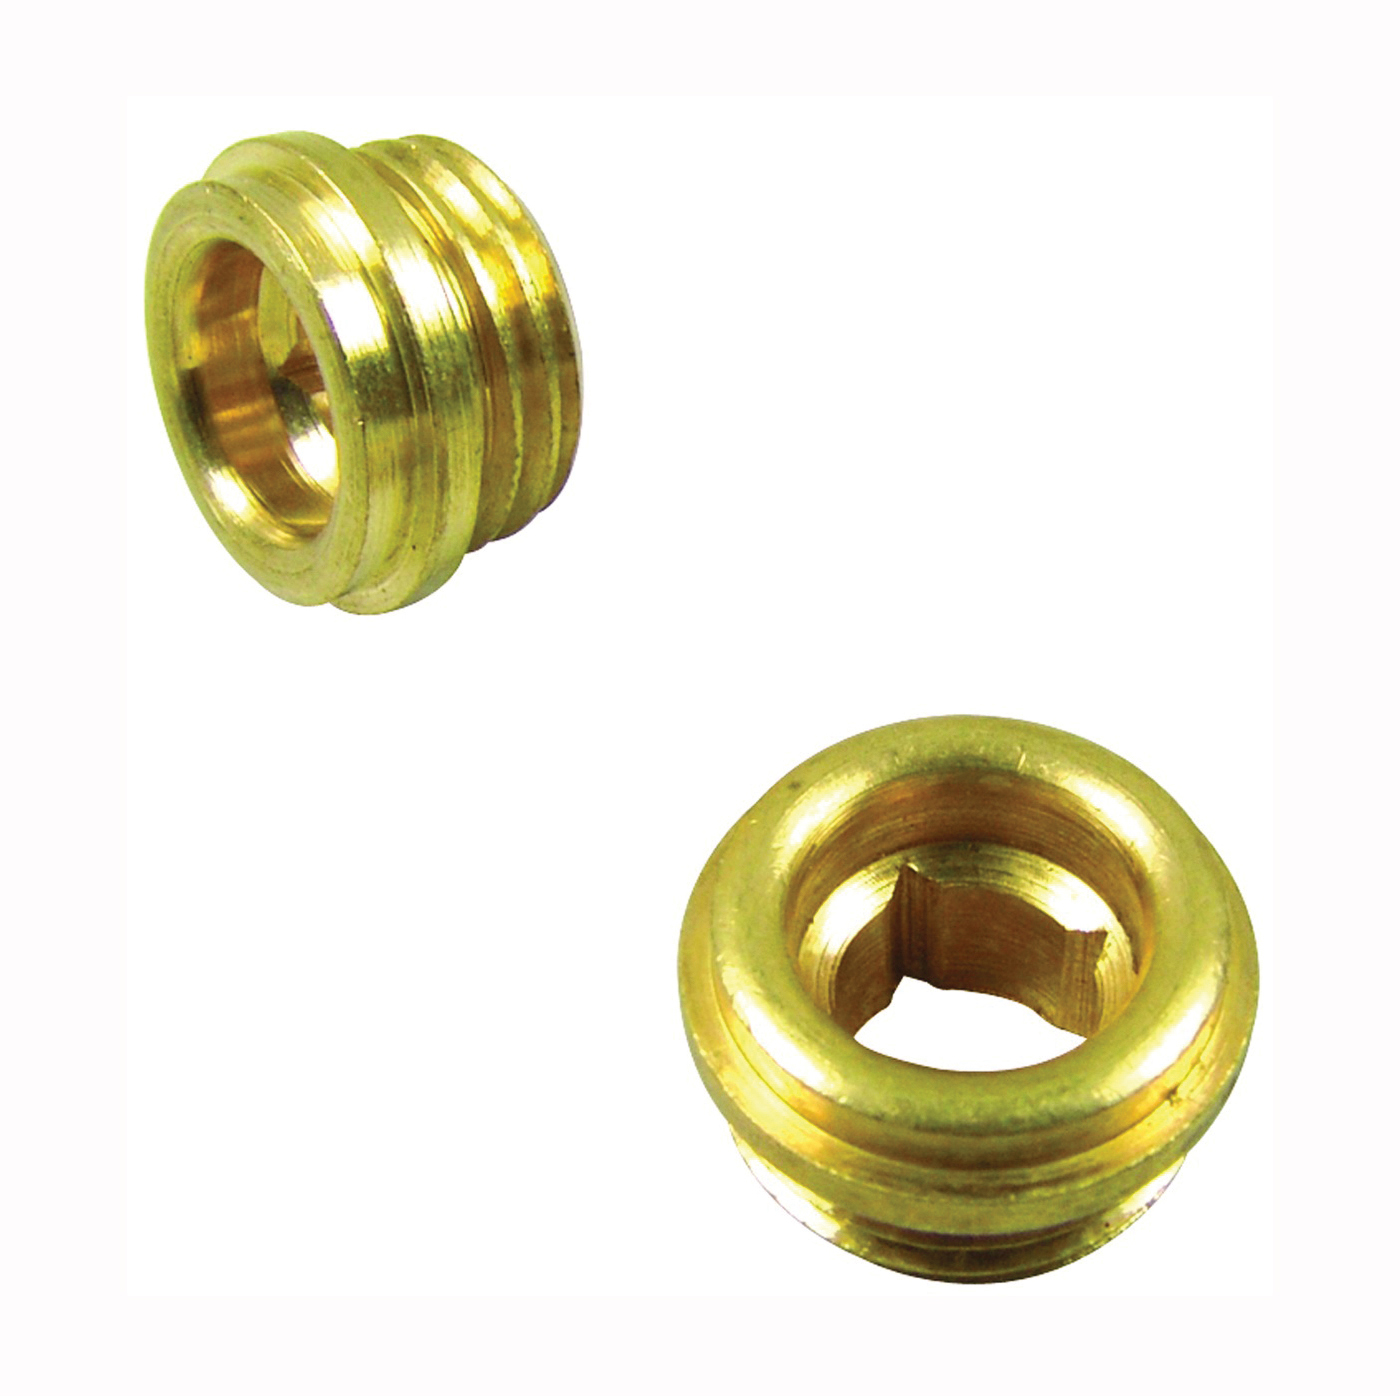 Picture of Danco 30112E Faucet Bibb Seat, Brass, For: Sayco Faucet